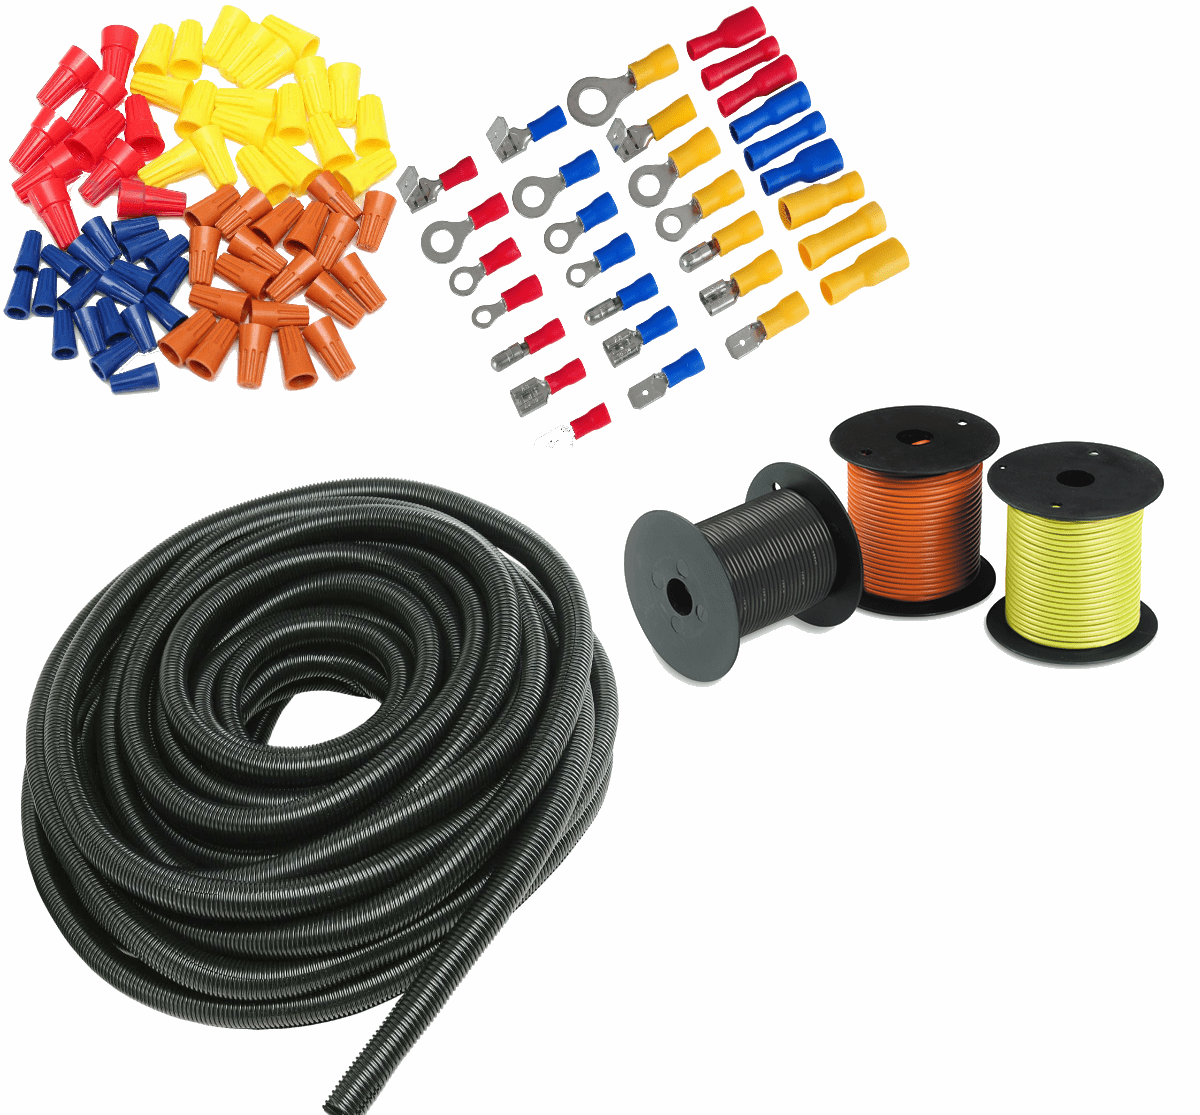 Electrical Connectors Terminals Wire Loom